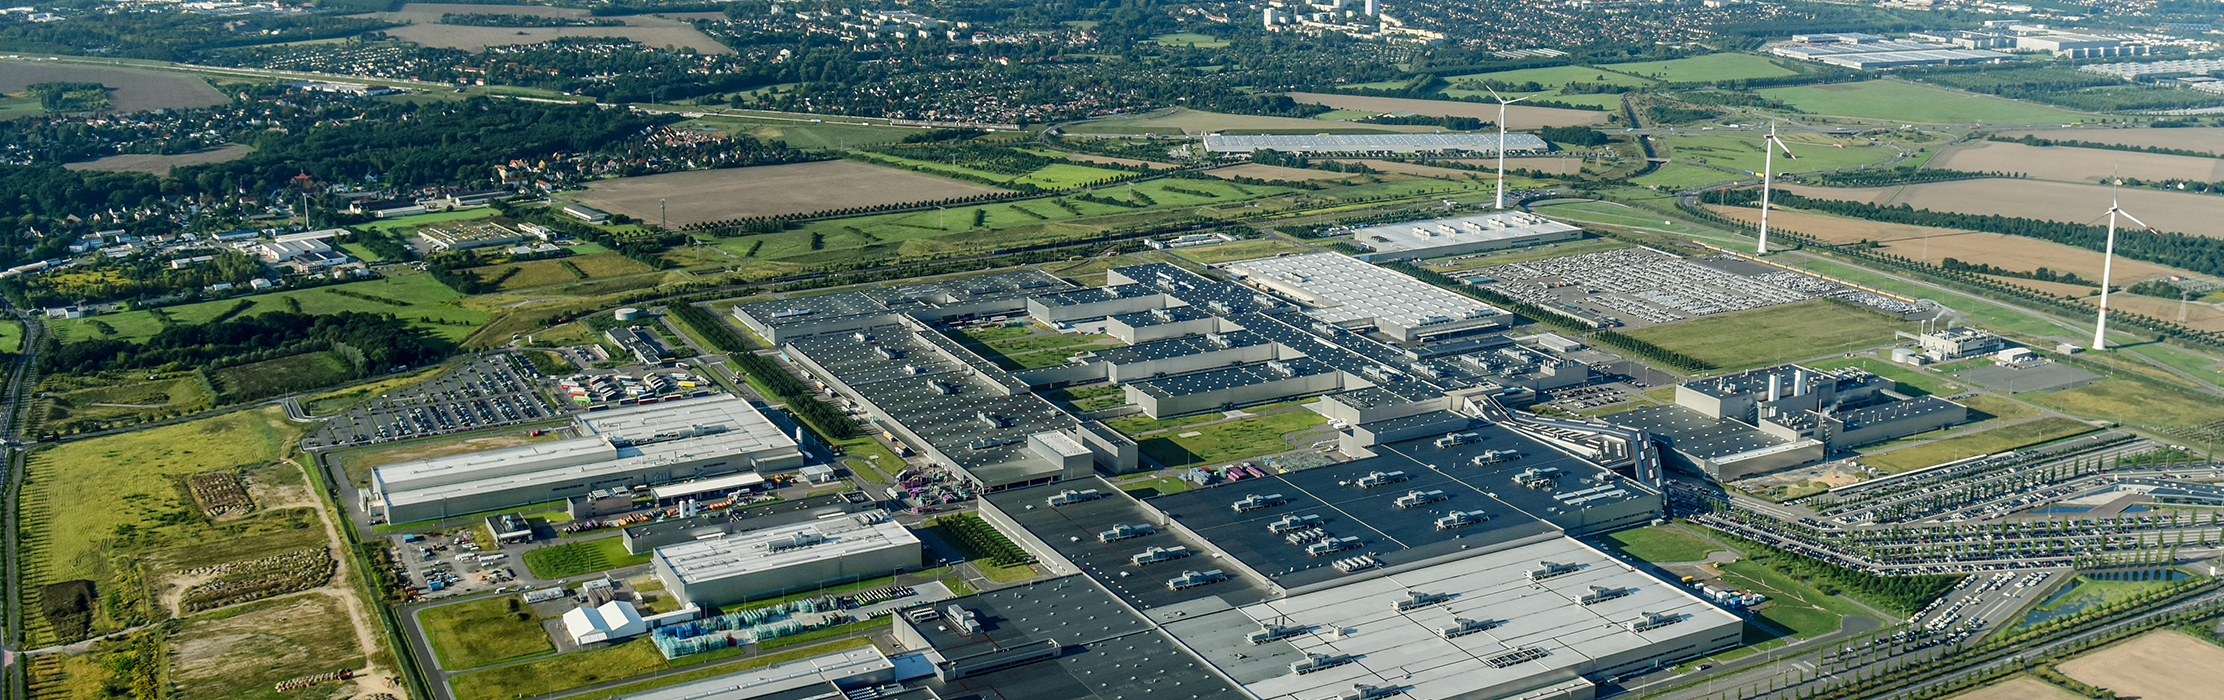 Bmw Group Careers Locations Plants In Germany Leipzig Plant